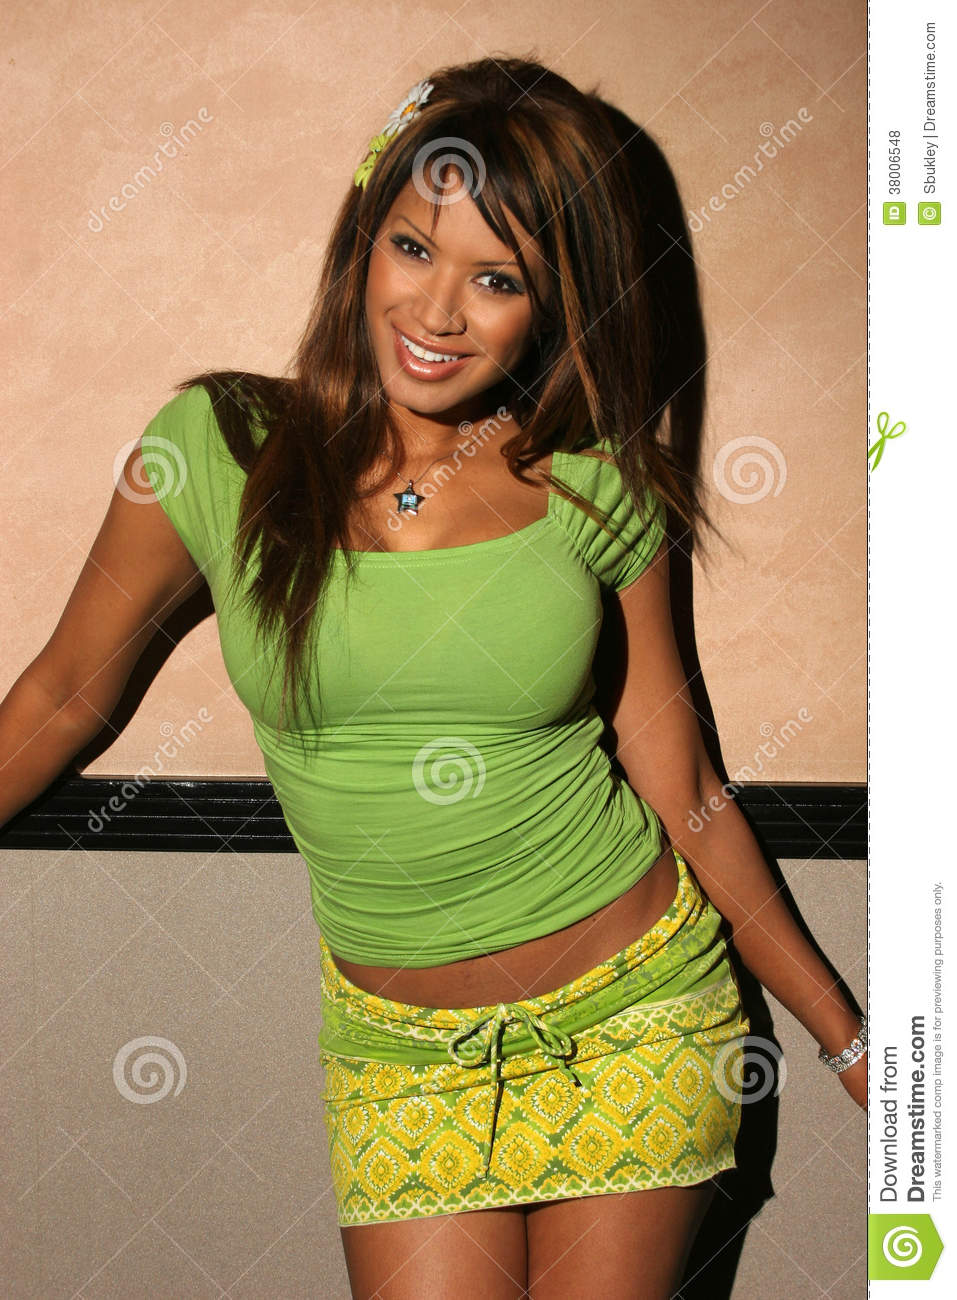 Forum on this topic: Molly O'Day, traci-bingham/